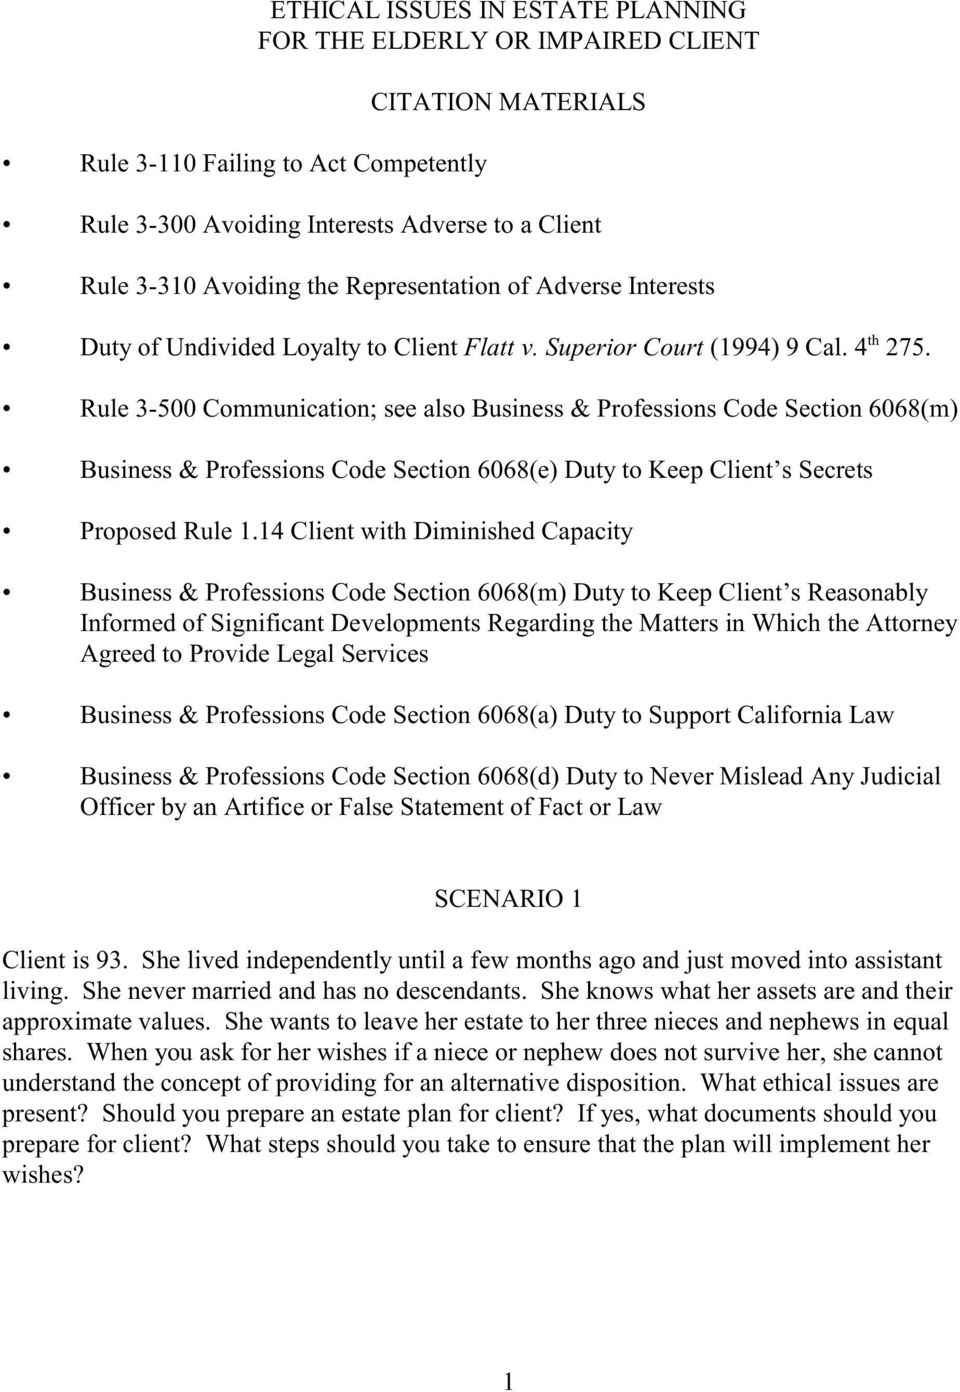 Rule 3-500 Communication; see also Business & Professions Code Section 6068(m) Business & Professions Code Section 6068(e) Duty to Keep Client s Secrets Proposed Rule 1.